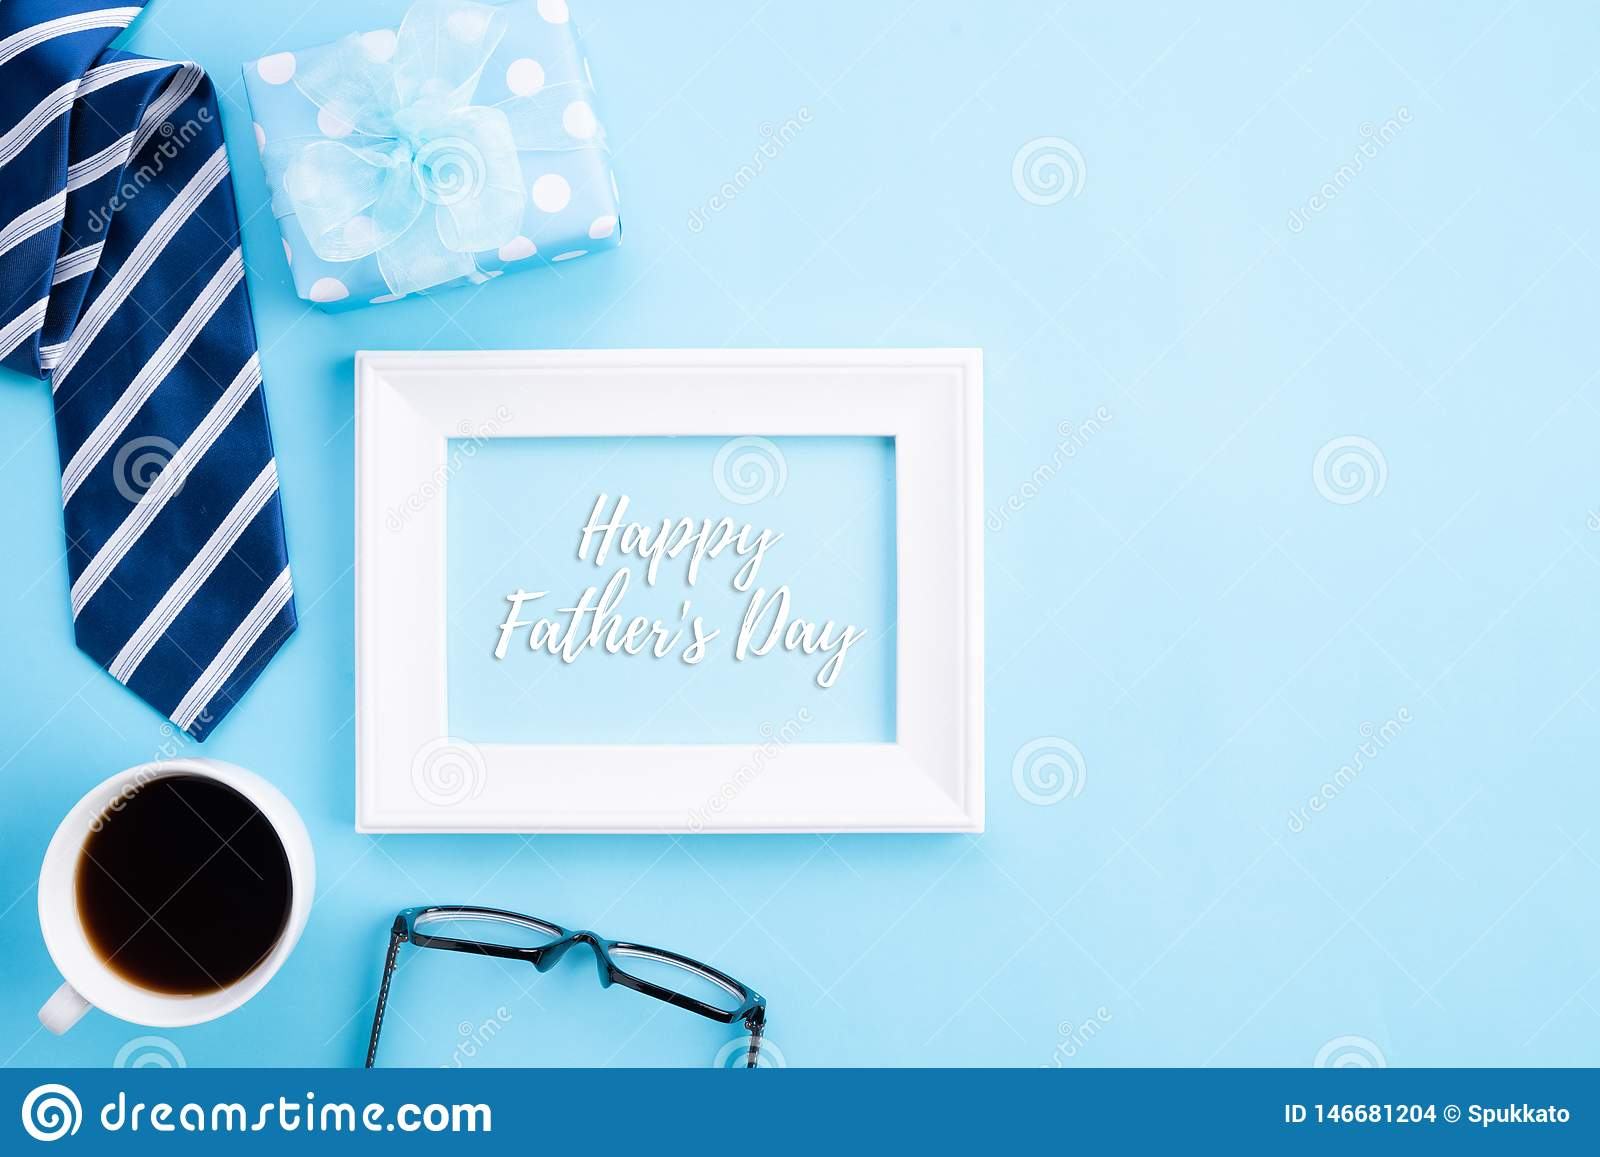 Happy Fathers Day Concept Top View Of Blue Tie Beautiful Gift Box Coffee Mug White Picture Frame With Happy Father S Day Text Stock Photo Image Of Decoration Black 146681204